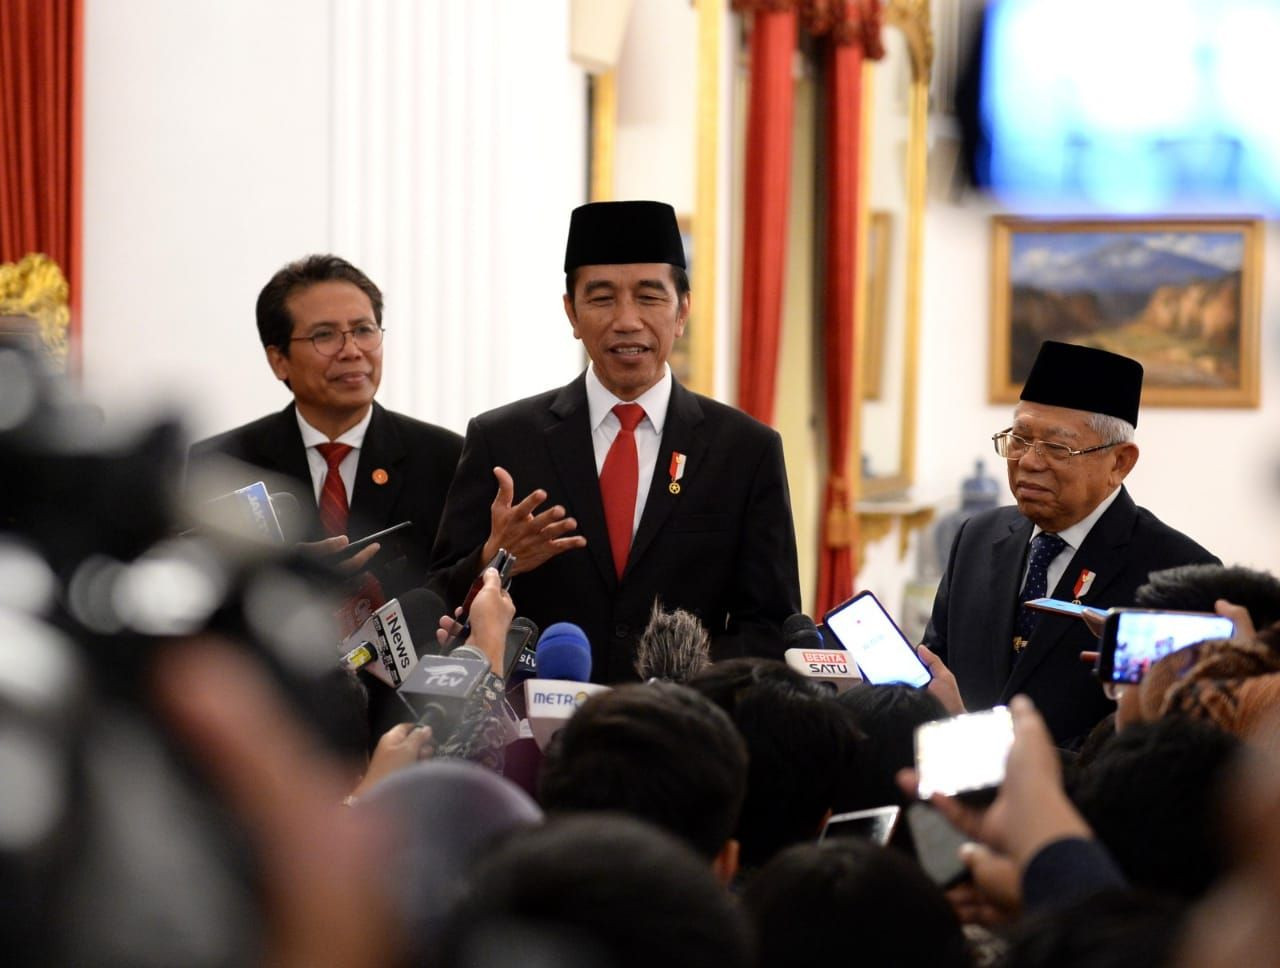 They are 'ex-citizens': Jokowi disowns overseas Indonesian IS supporters